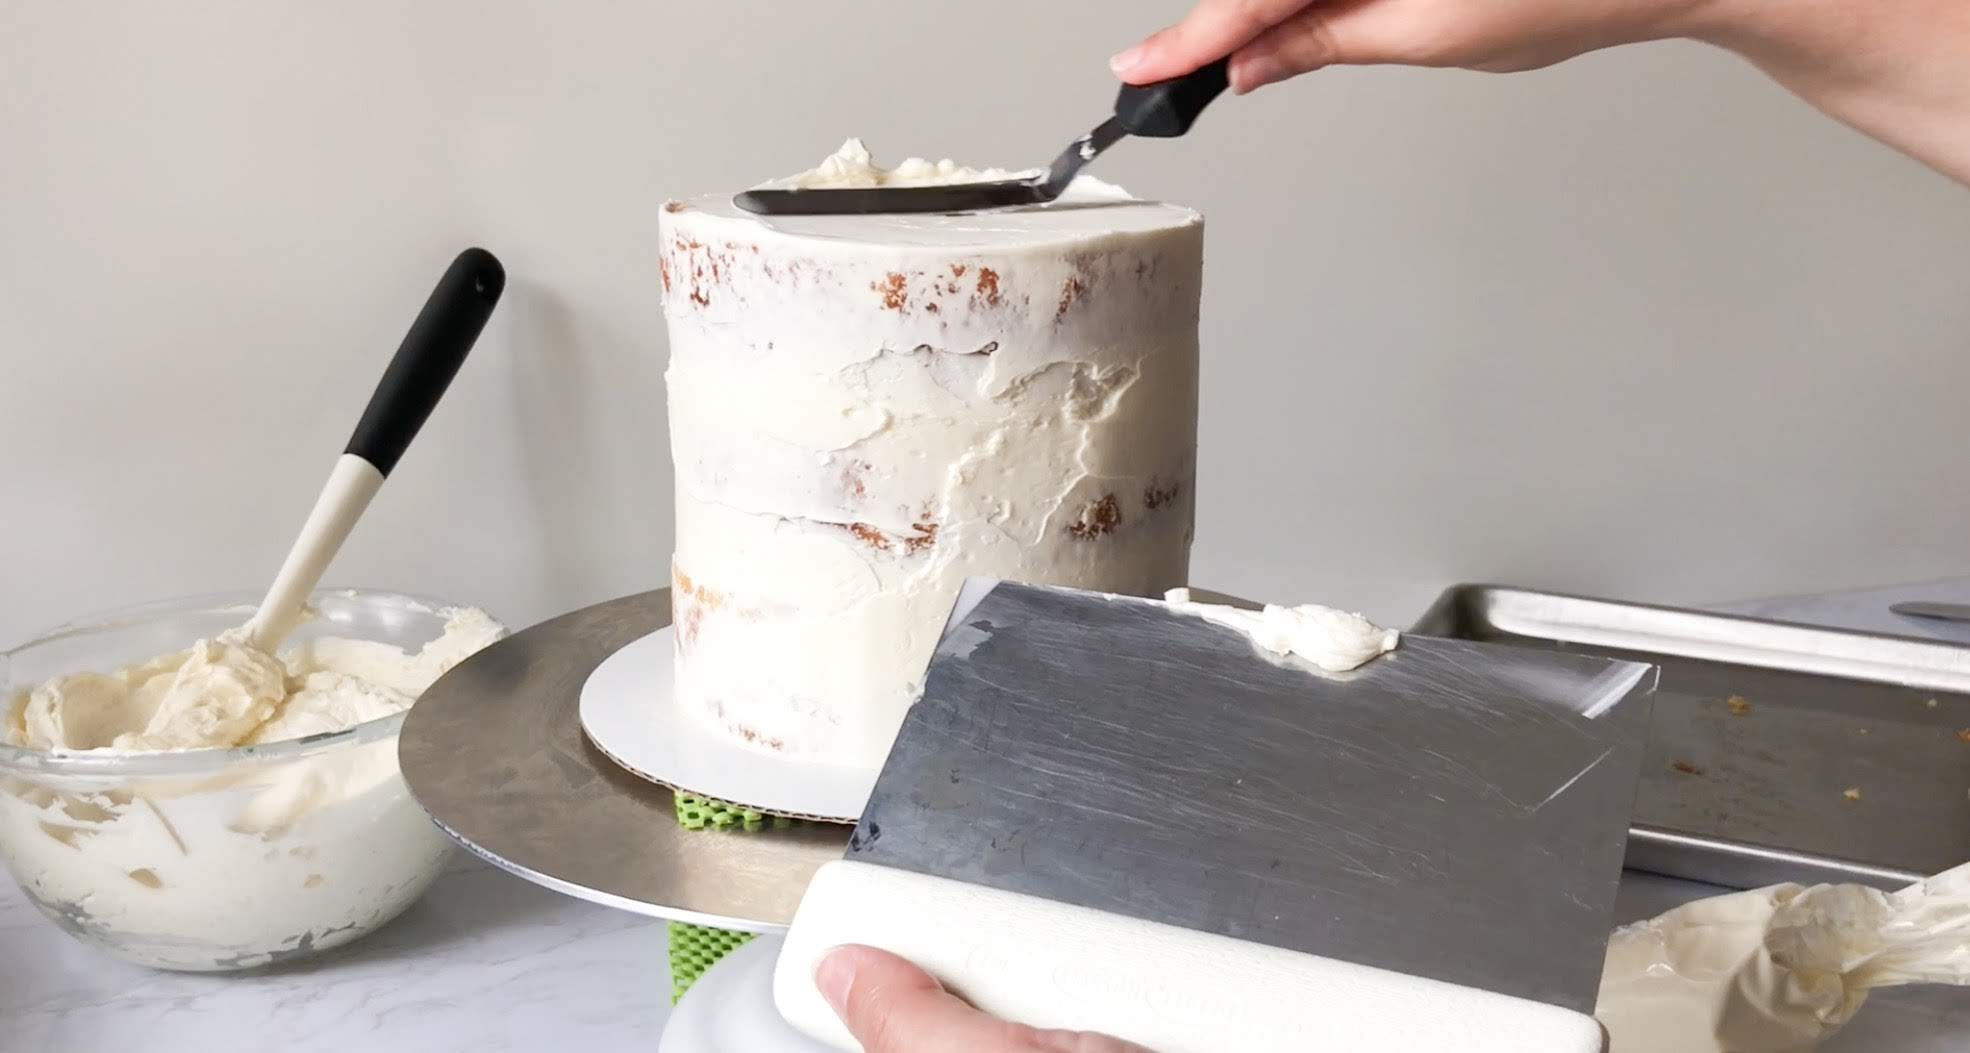 I love cake decorating but I get so worried I don't know what I am doing. Idk where to start and that's why I absolutely love this cake decorating guide on How to Crumb Coat a Cake! Creating the smooth, flawless buttercream finish you often find on professionally made cakes comes with practice. It also comes with the knowledge of a few insider techniques! #xokatierosario #cakedecoratingtipsandtricks #crumbcoat #nakedcakes #cakedecorating